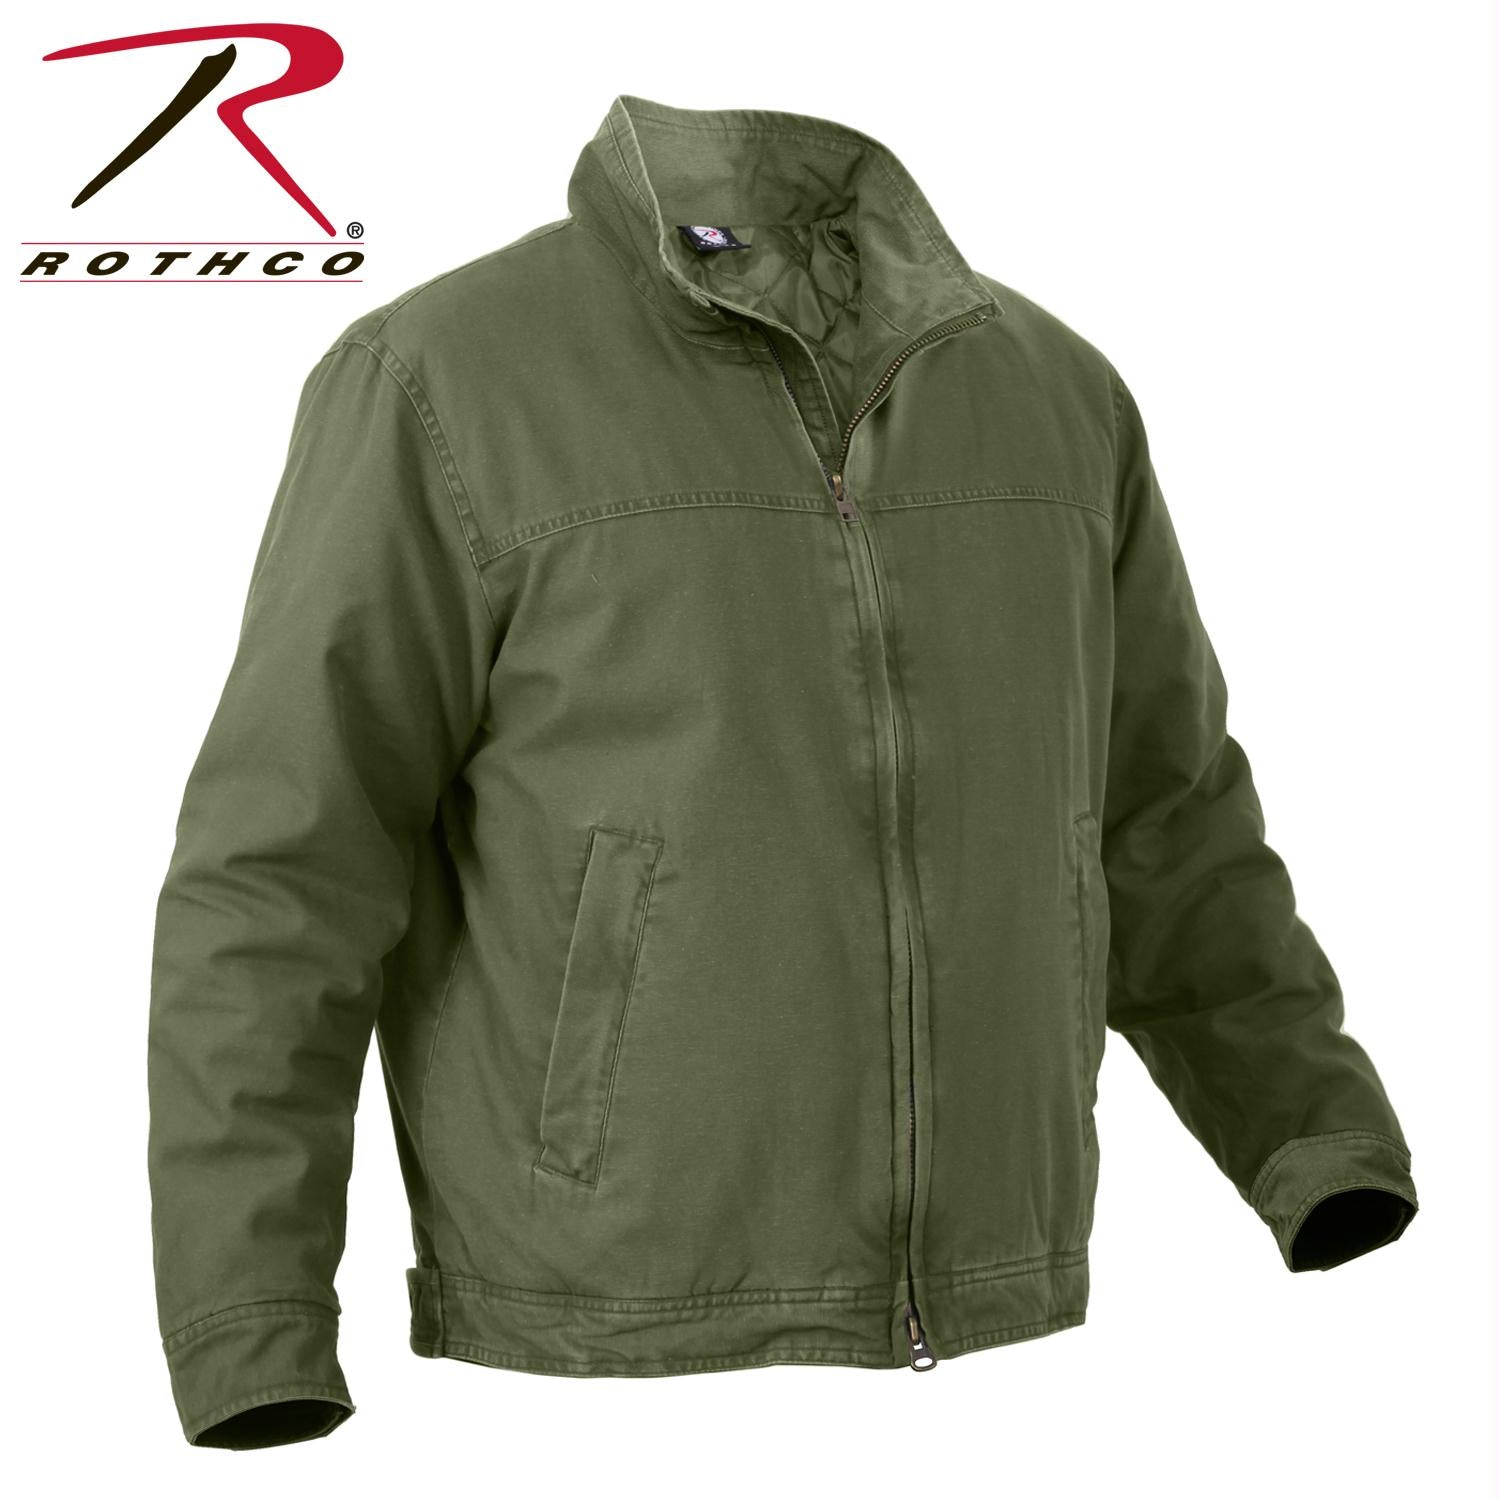 Rothco 3 Season Concealed Carry Jacket - Olive Drab / L